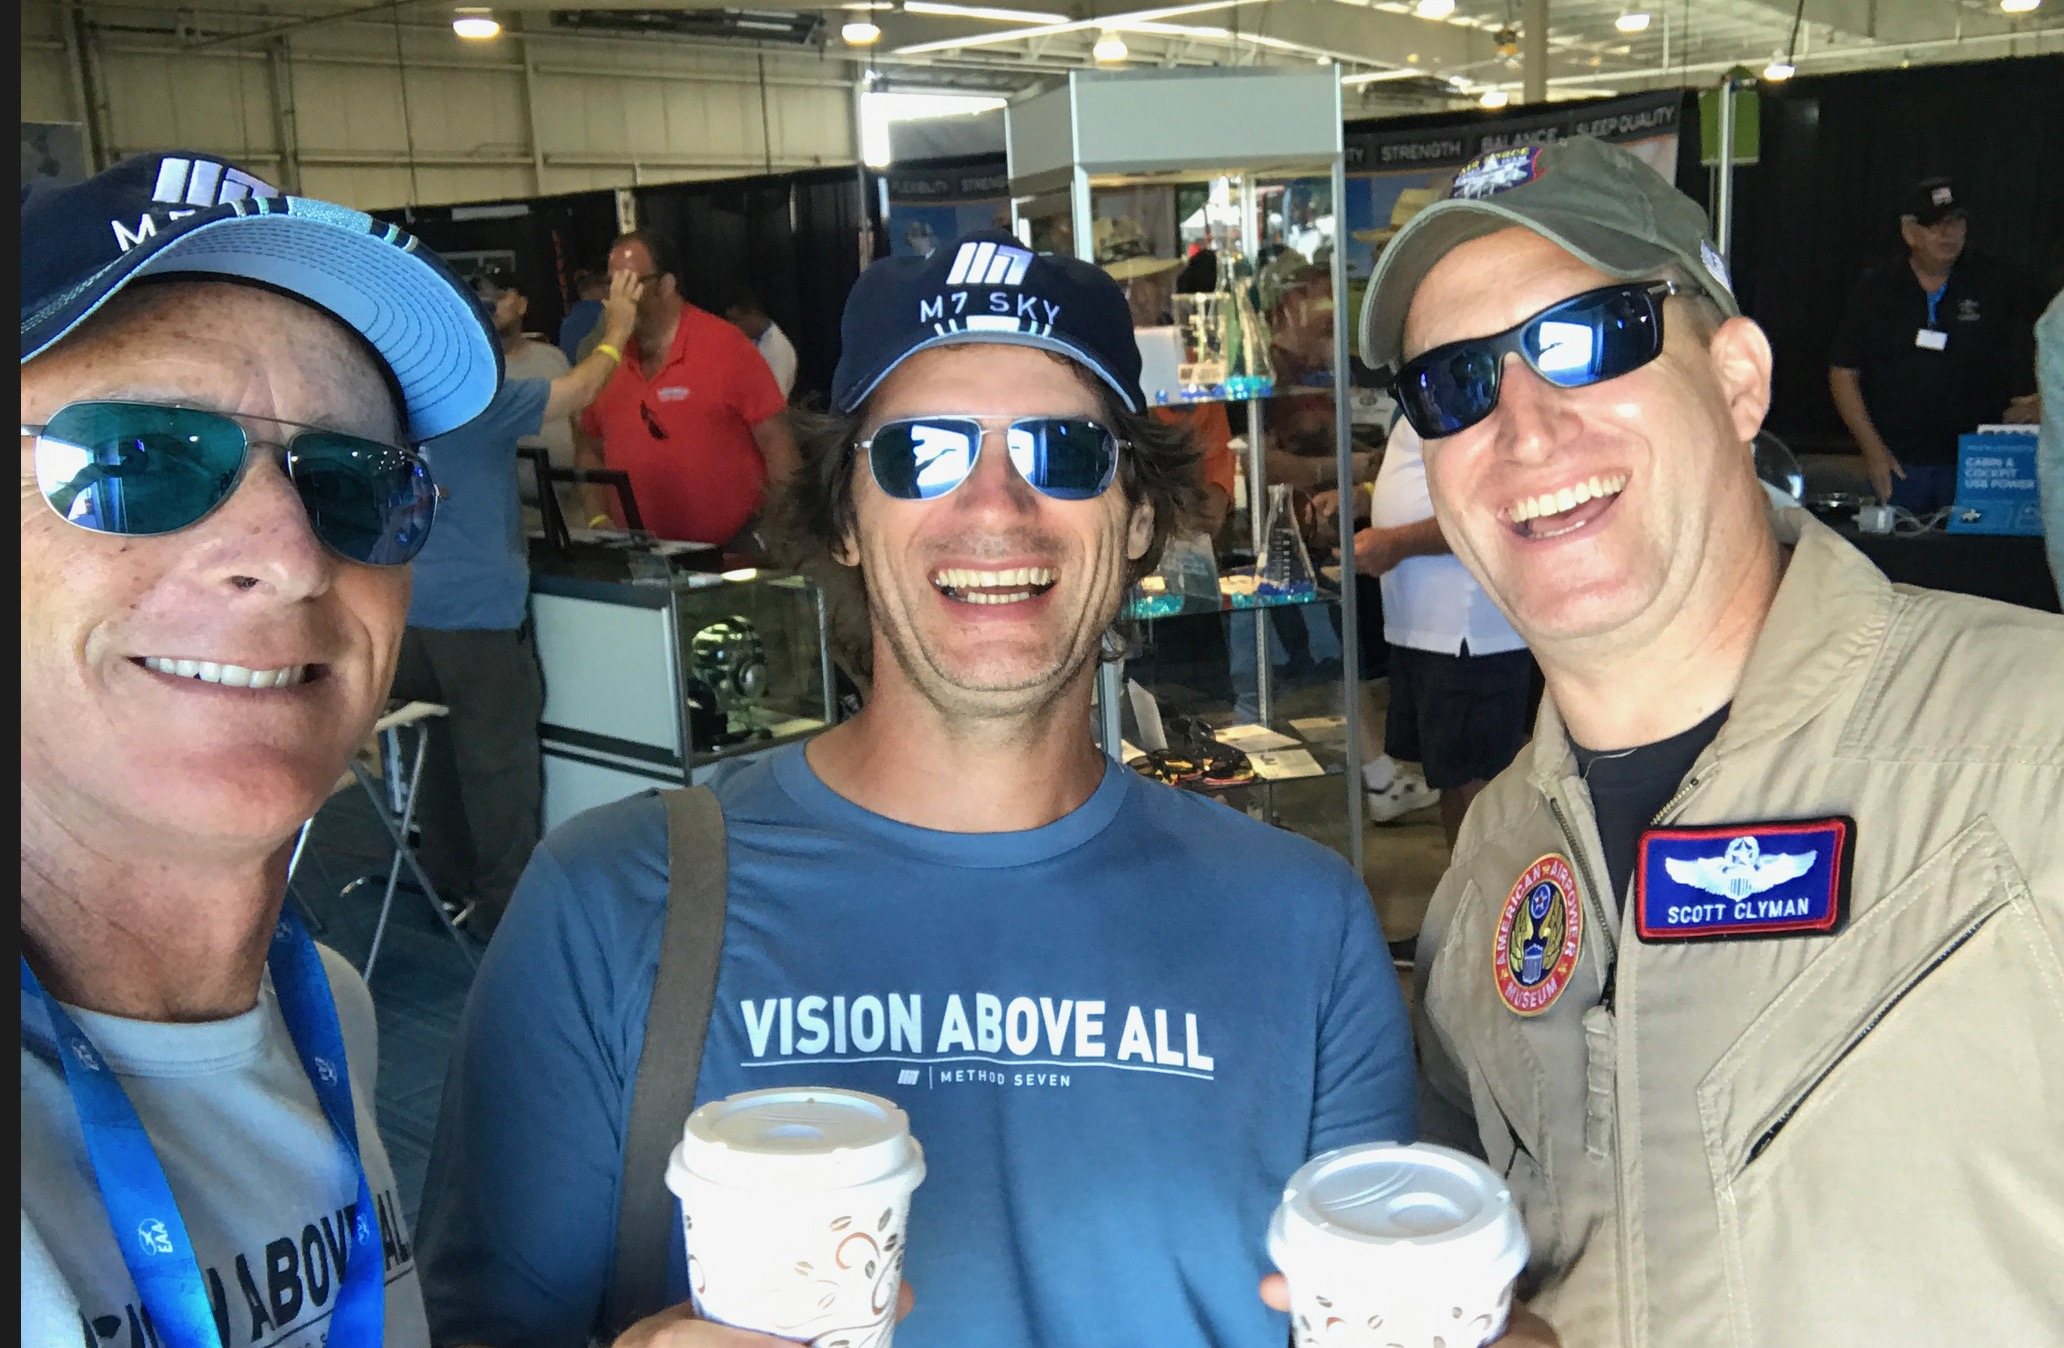 James Cox with a Few Pilots and The Eyewear